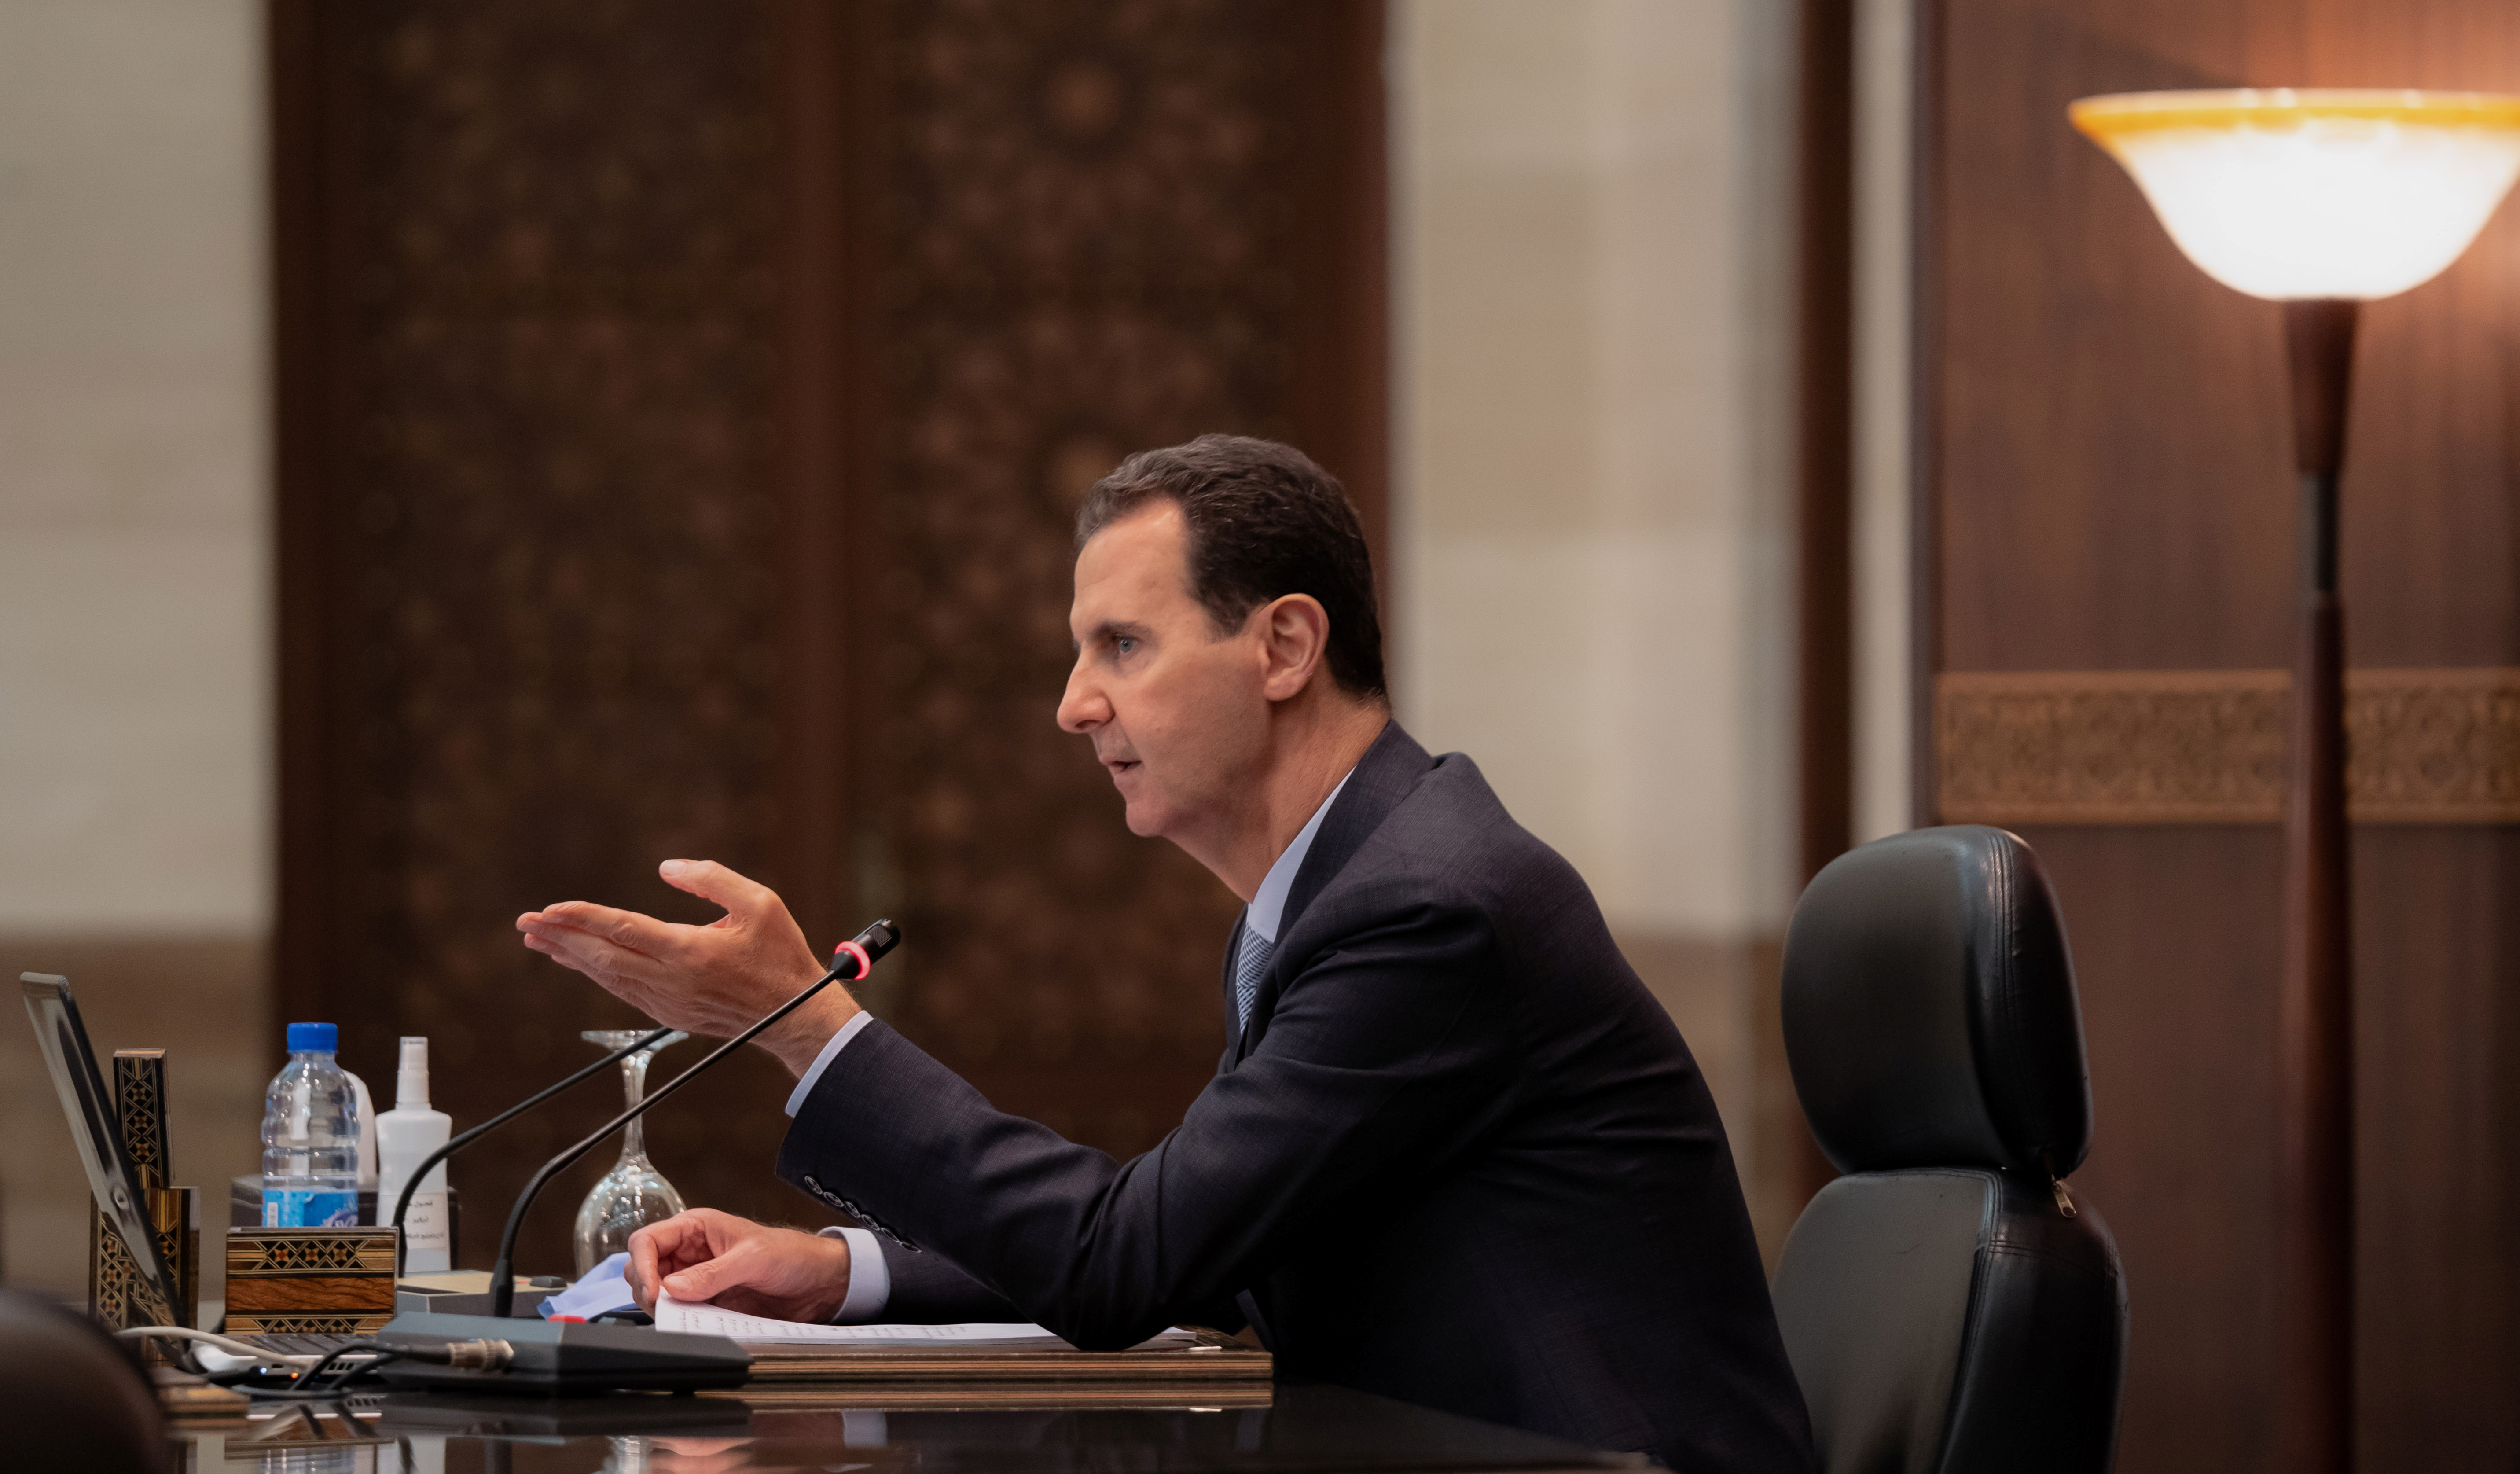 Syria's President Bashar al-Assad speaks as he meets with the Syrian cabinet in Damascus, Syria in this handout picture released by Sana on March 30, 2021. SANA/Handout via REUTERS